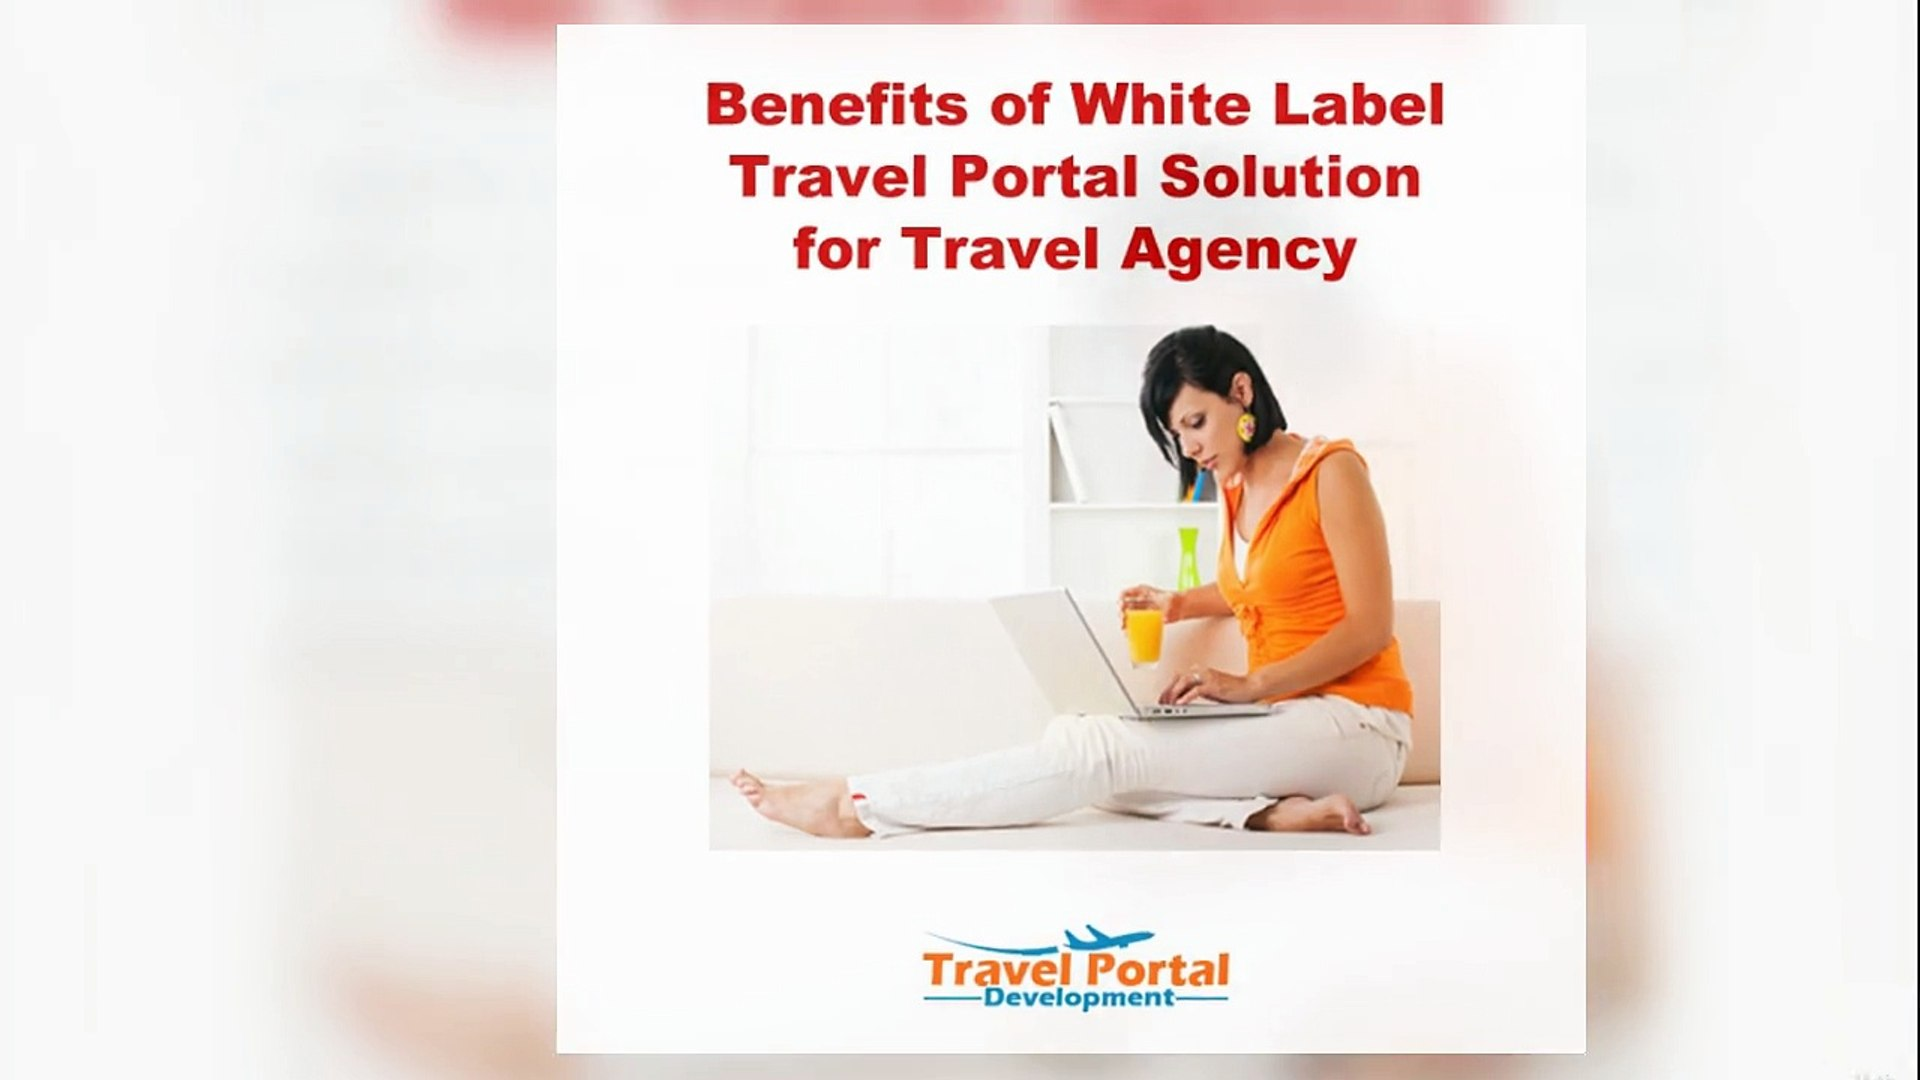 Benefits of white label travel portal solution for travel agency